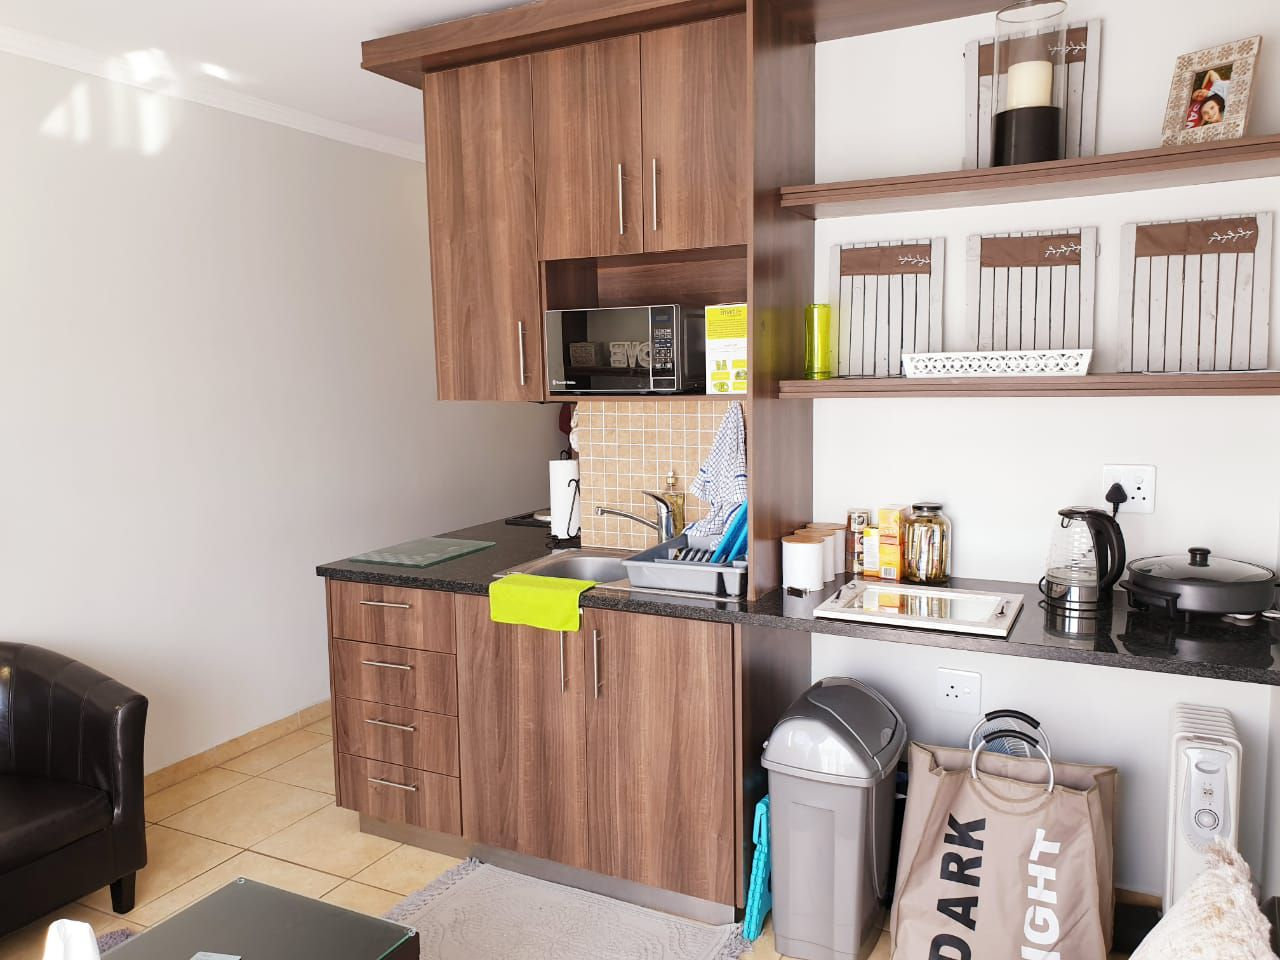 Apartment in Bult - WhatsApp Image 2019-04-30 at 14.18.47 (2).jpeg